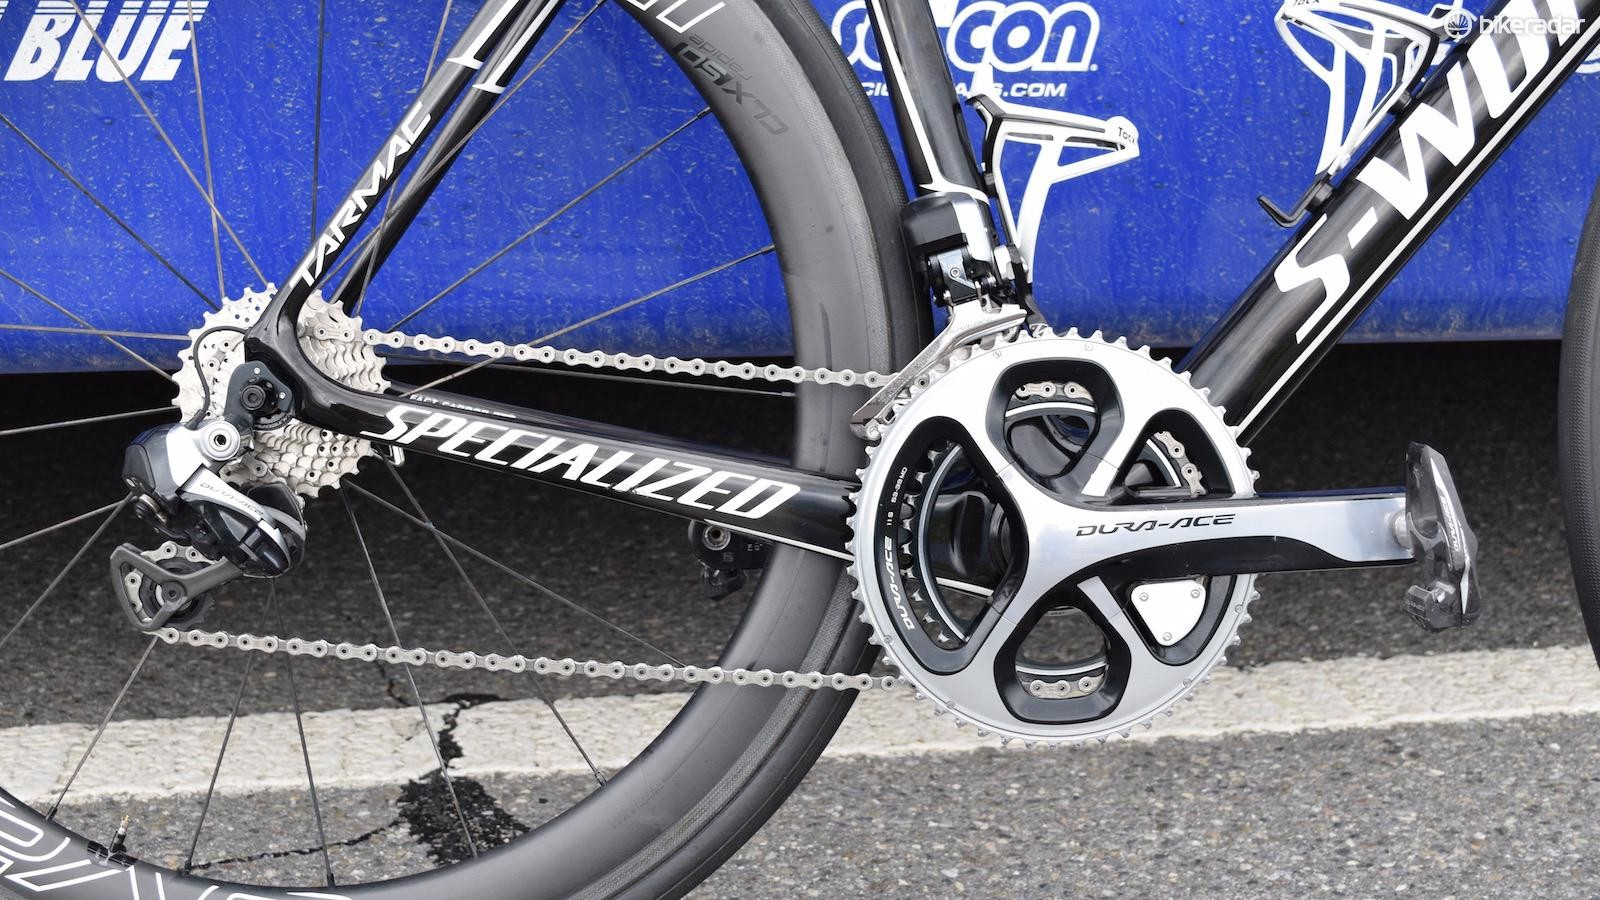 Jungels' bike is equipped with a Shimano Dura-Ace 9070 groupset